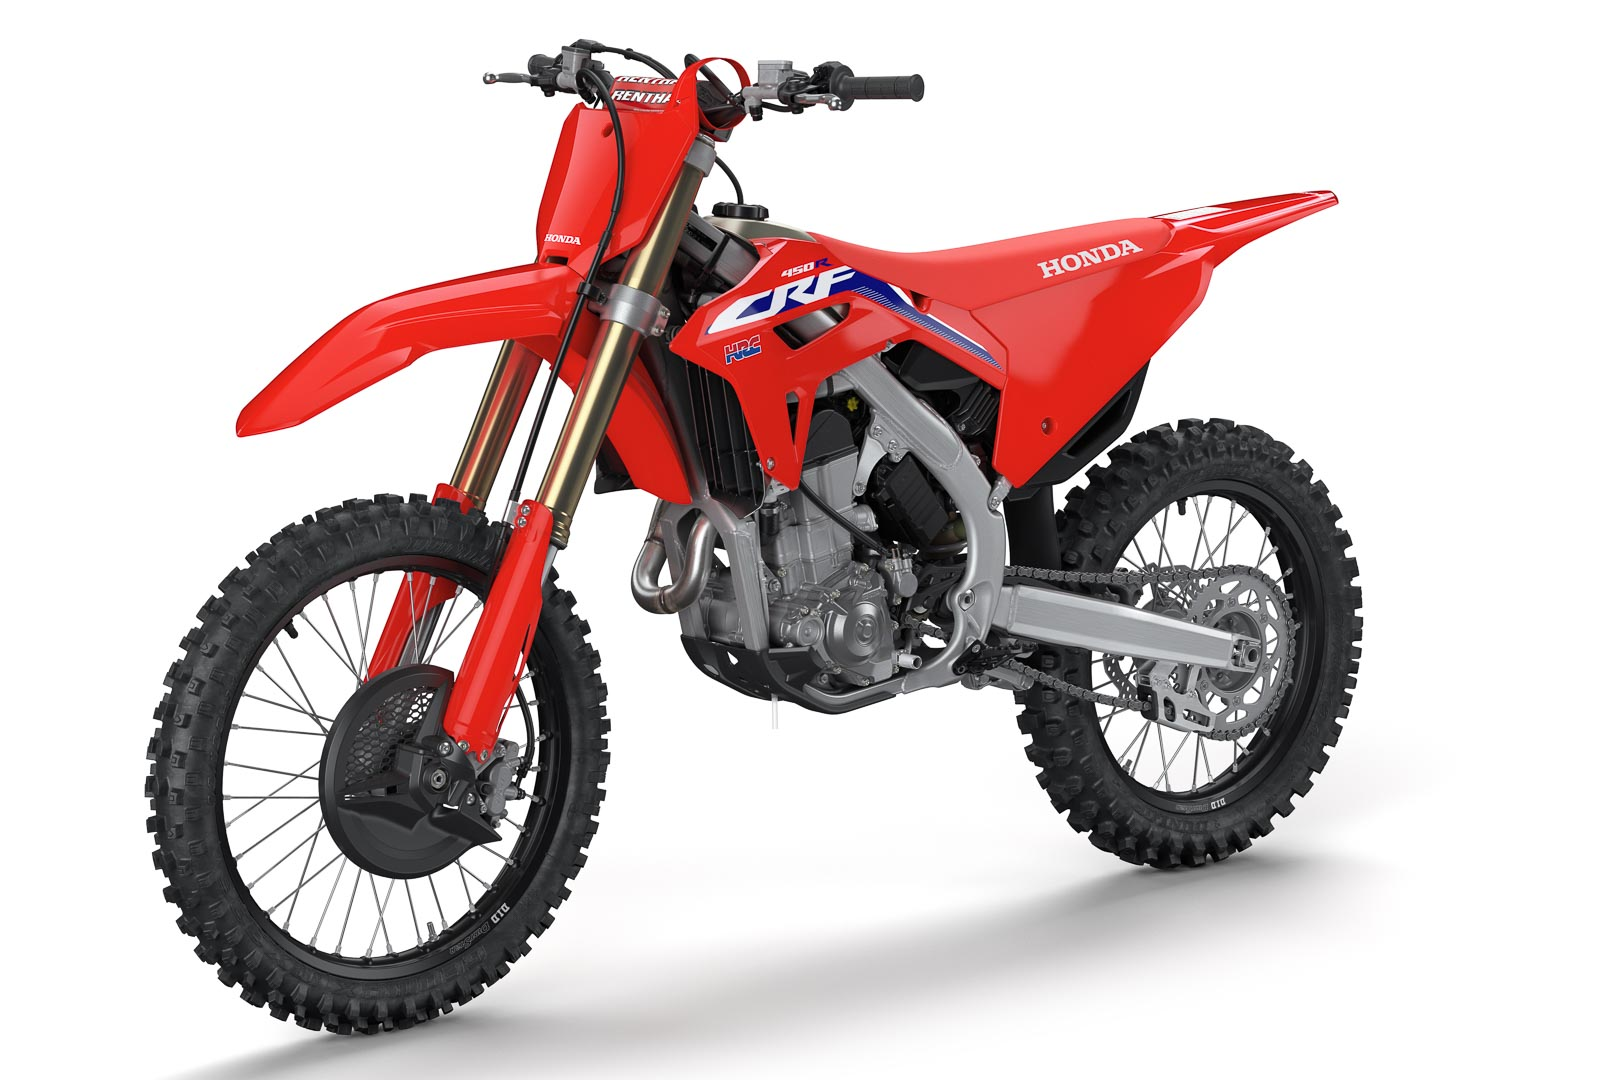 2021 honda crf450r first look 22 fast facts ultimate